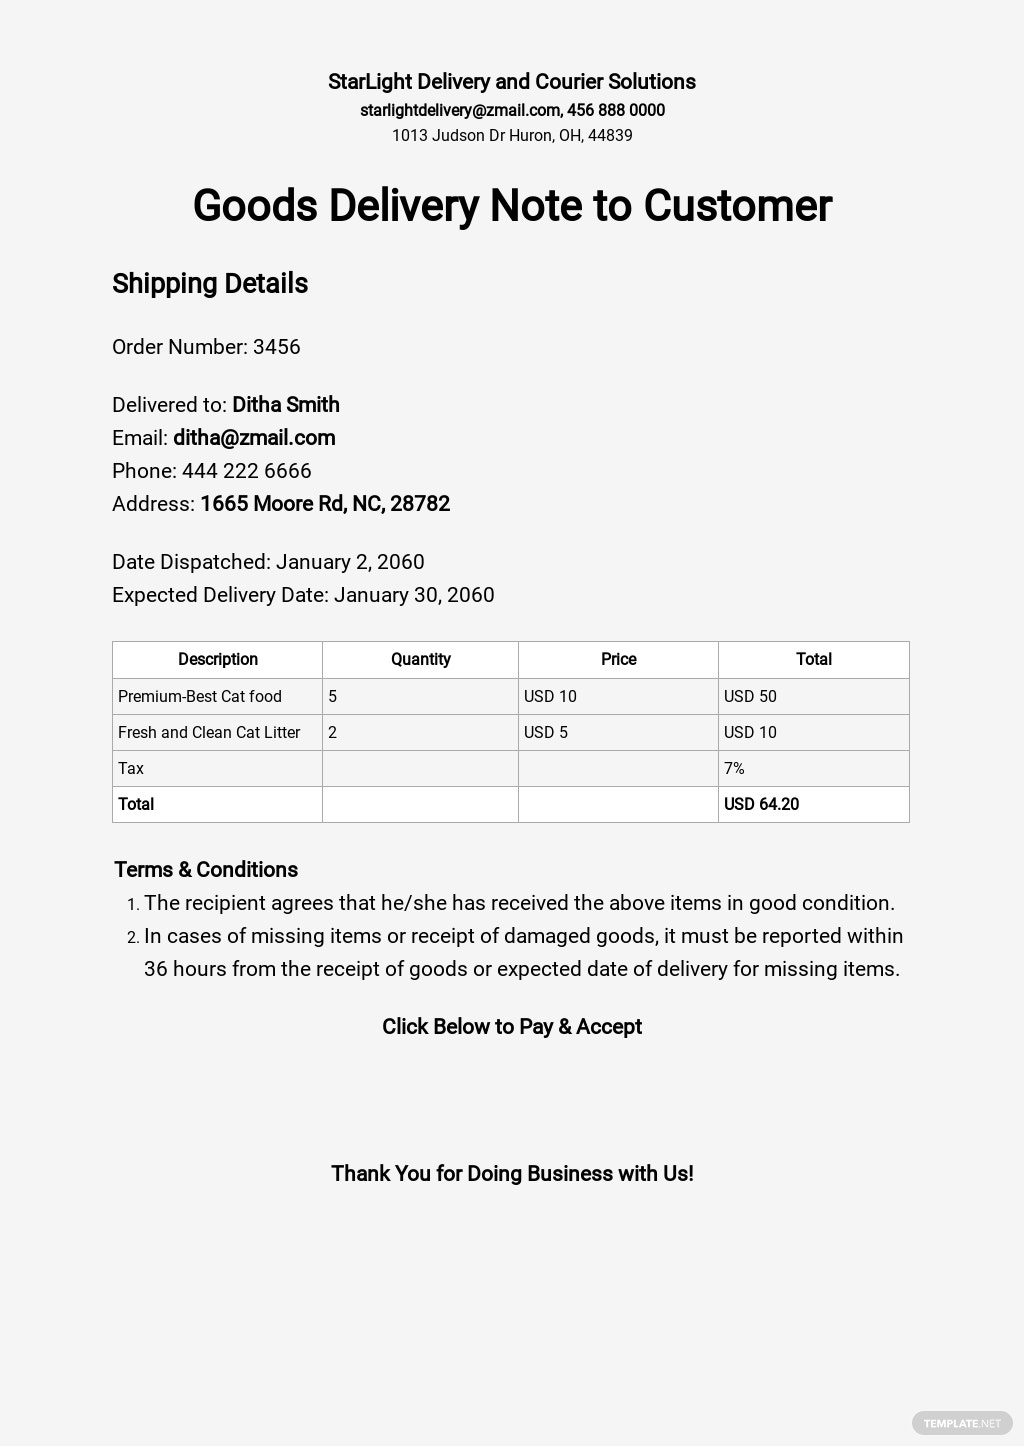 Goods Delivery Note Template to Customer.jpe